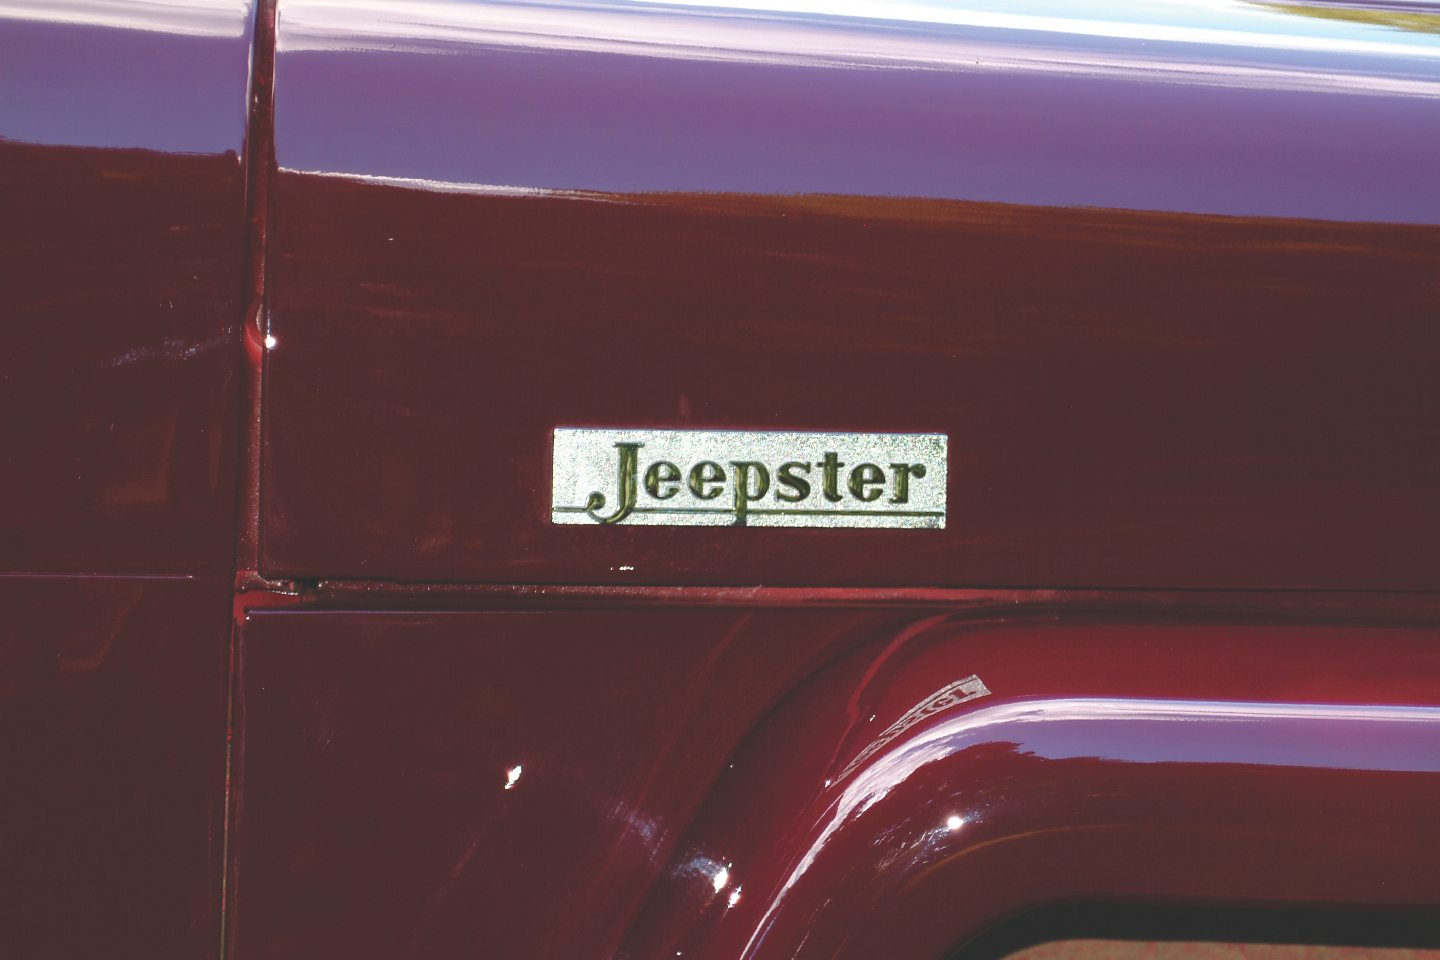 1949 Willys-Overland Jeepster Badge